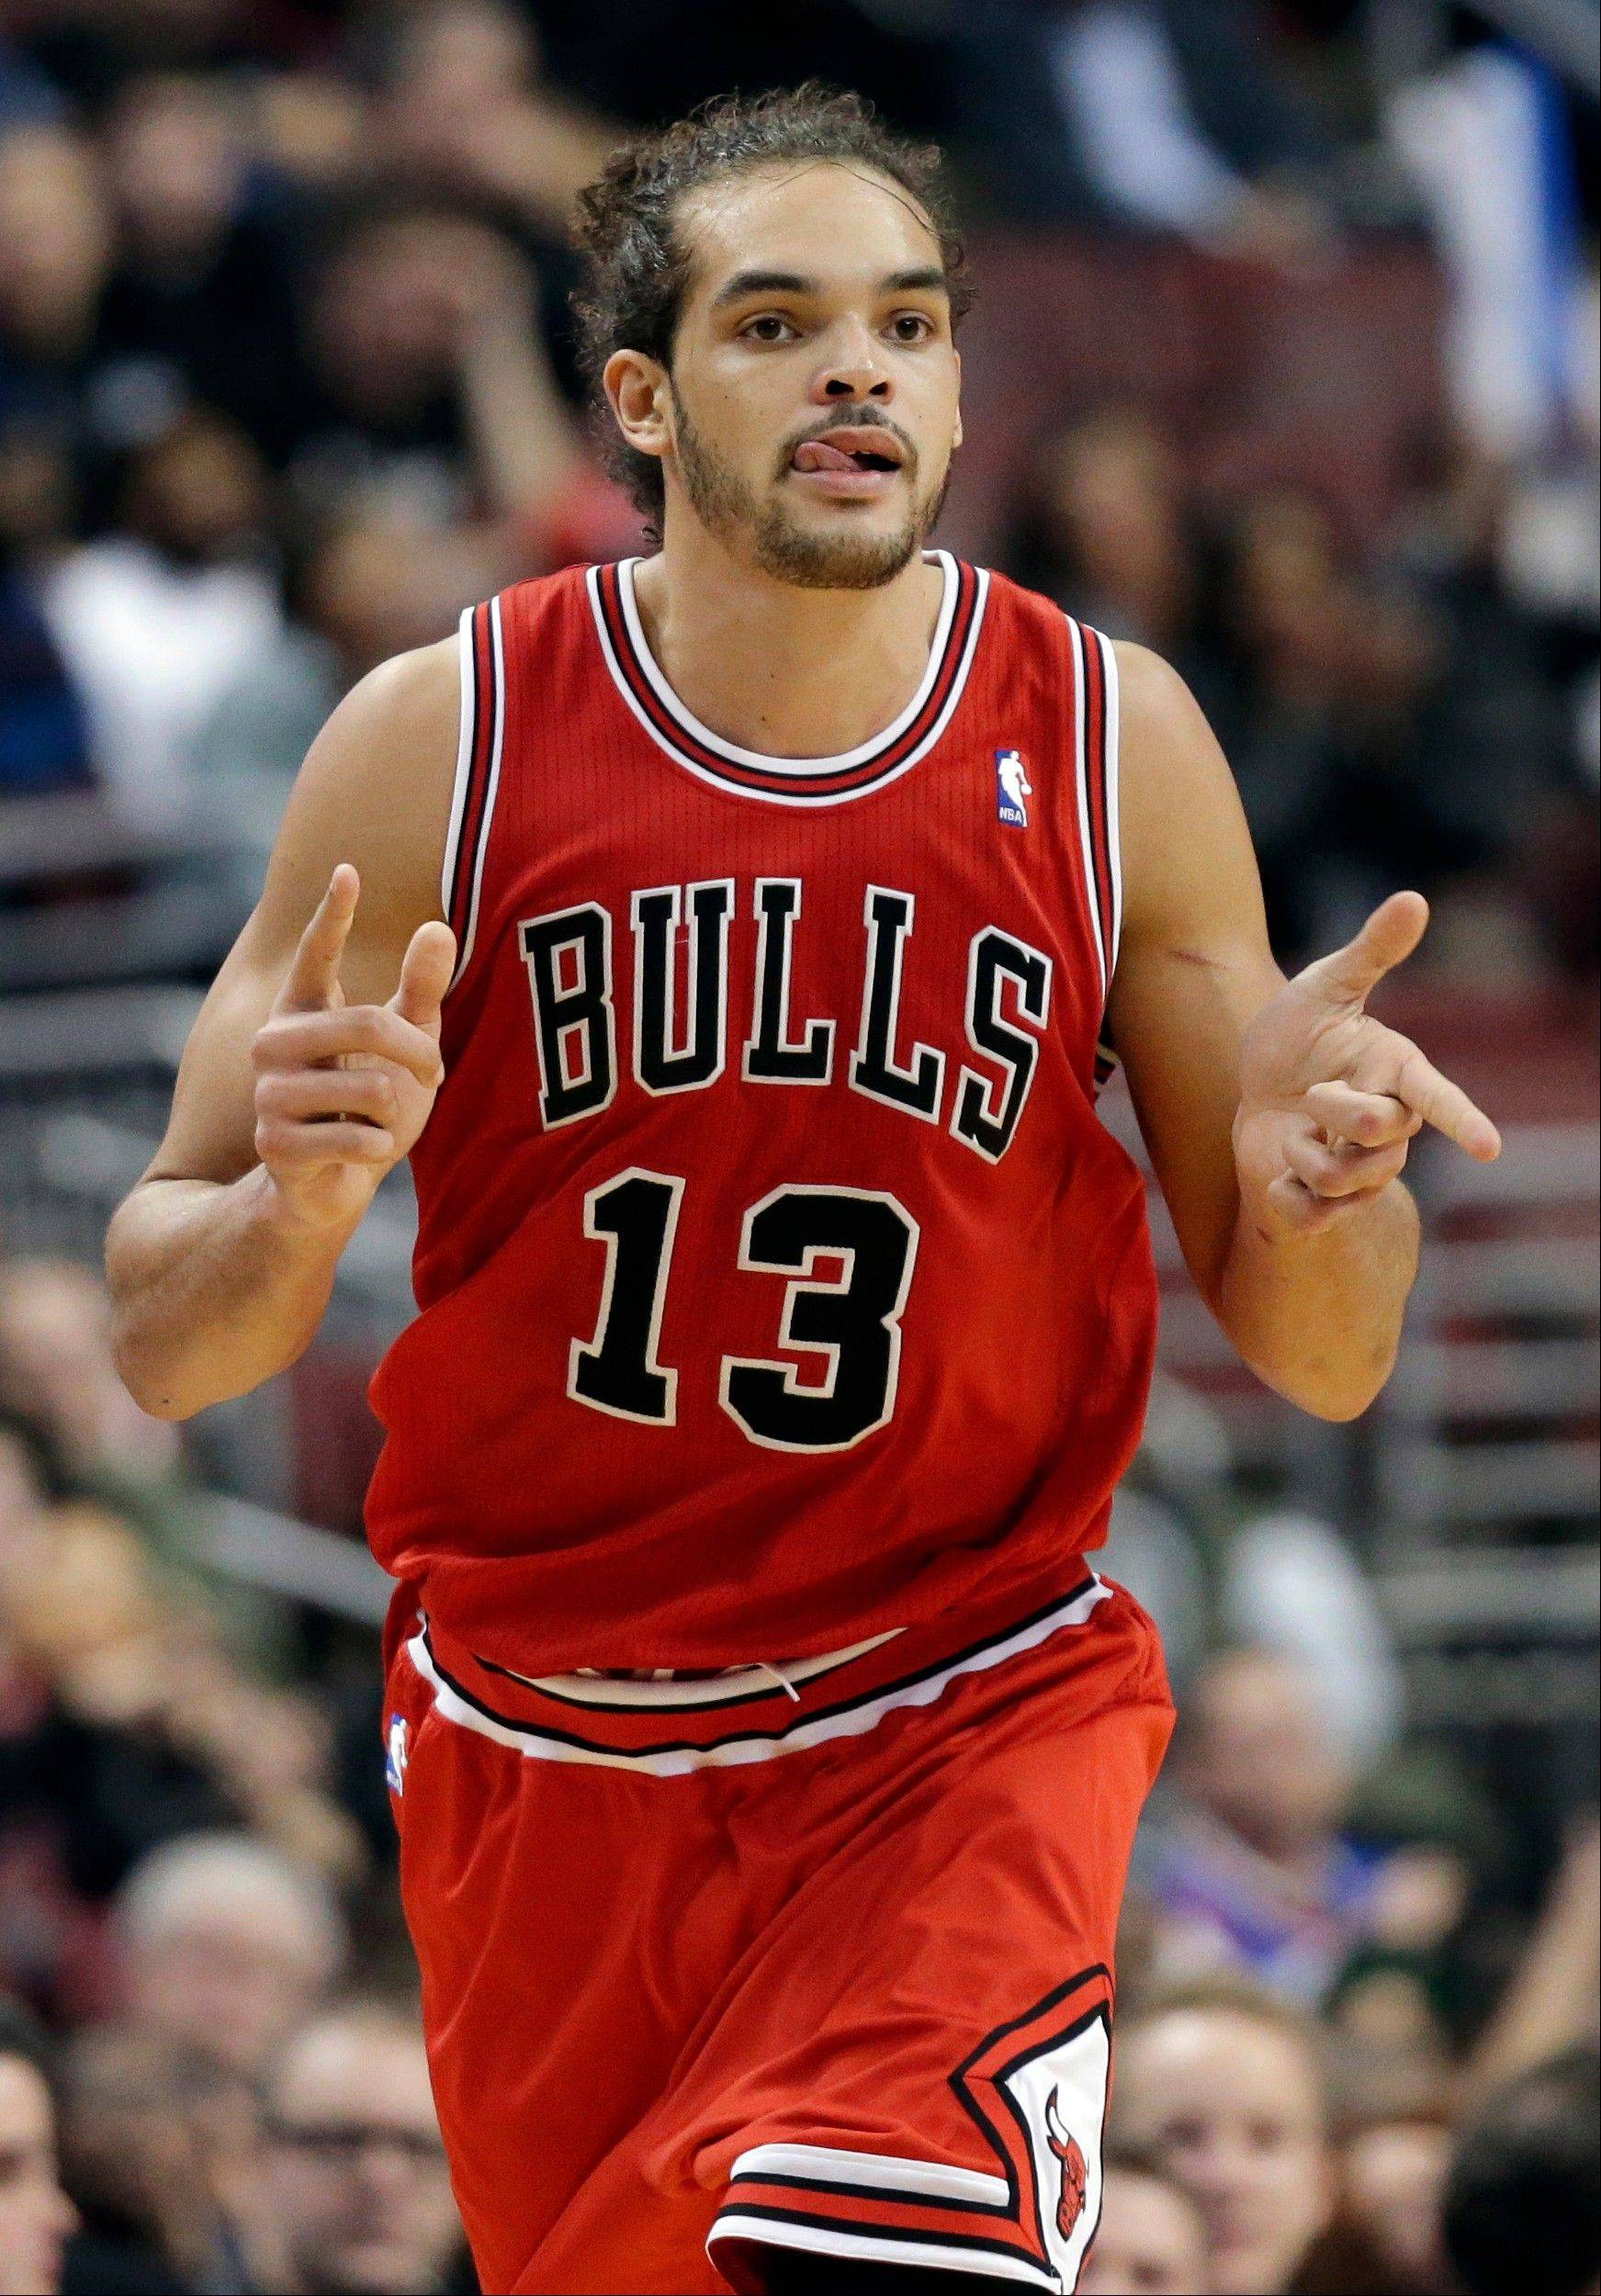 Joakim Noah reacts after scoring in the second half Wednesday night, when he finished with 21 points for the Bulls.